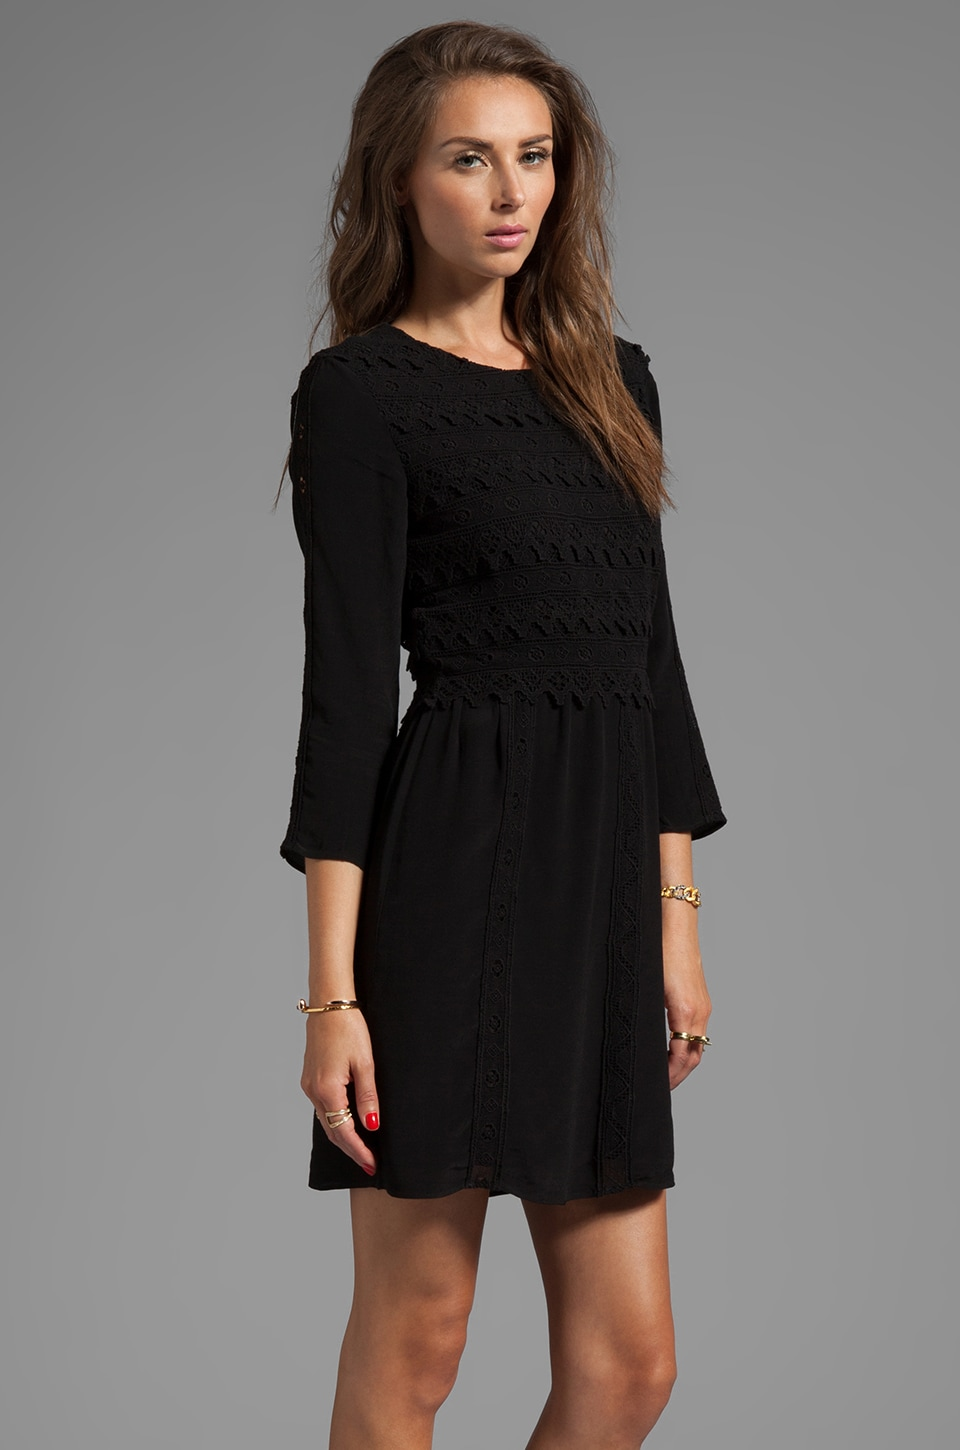 Dolce Vita Dosa Edgy Lace Dress in Black